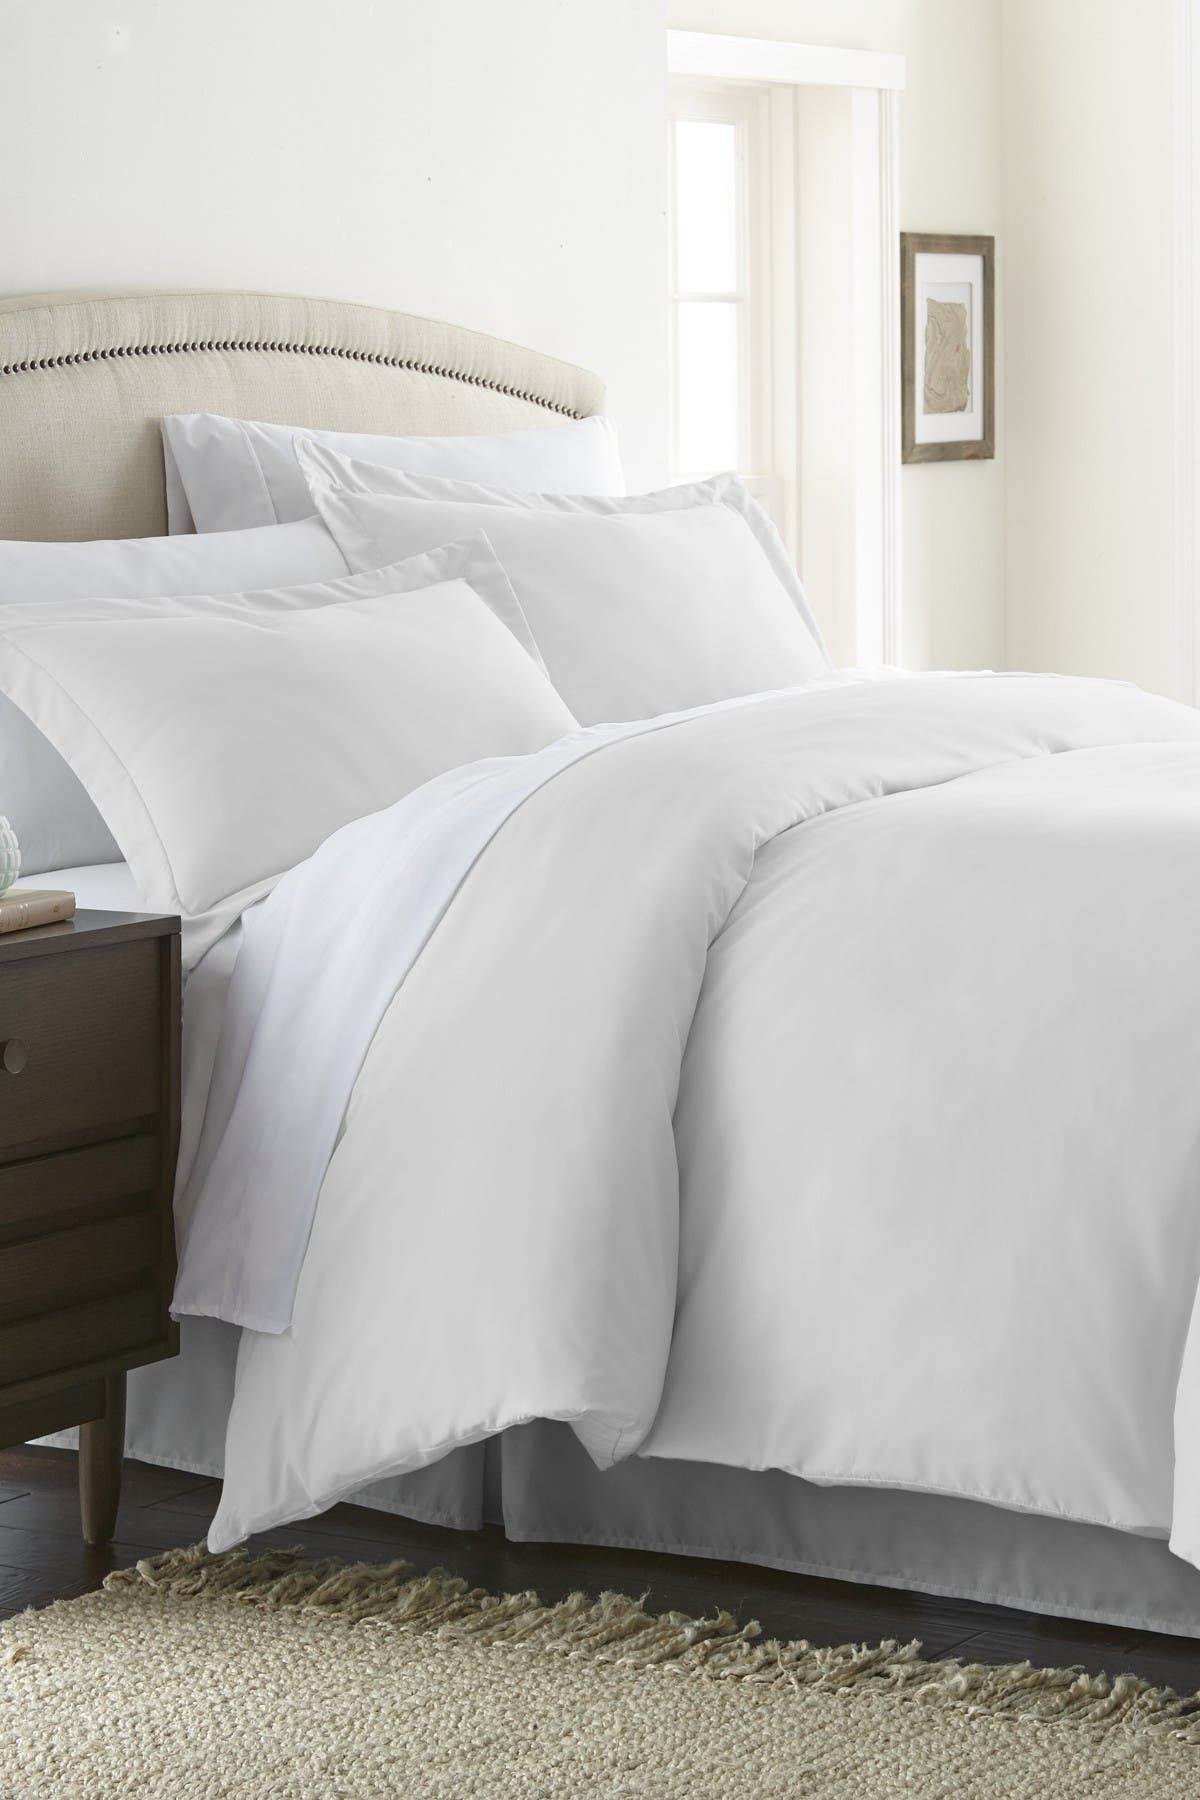 Image of IENJOY HOME Home Collection Premium Ultra Soft 3-Piece Full/Queen Duvet Cover Set - White